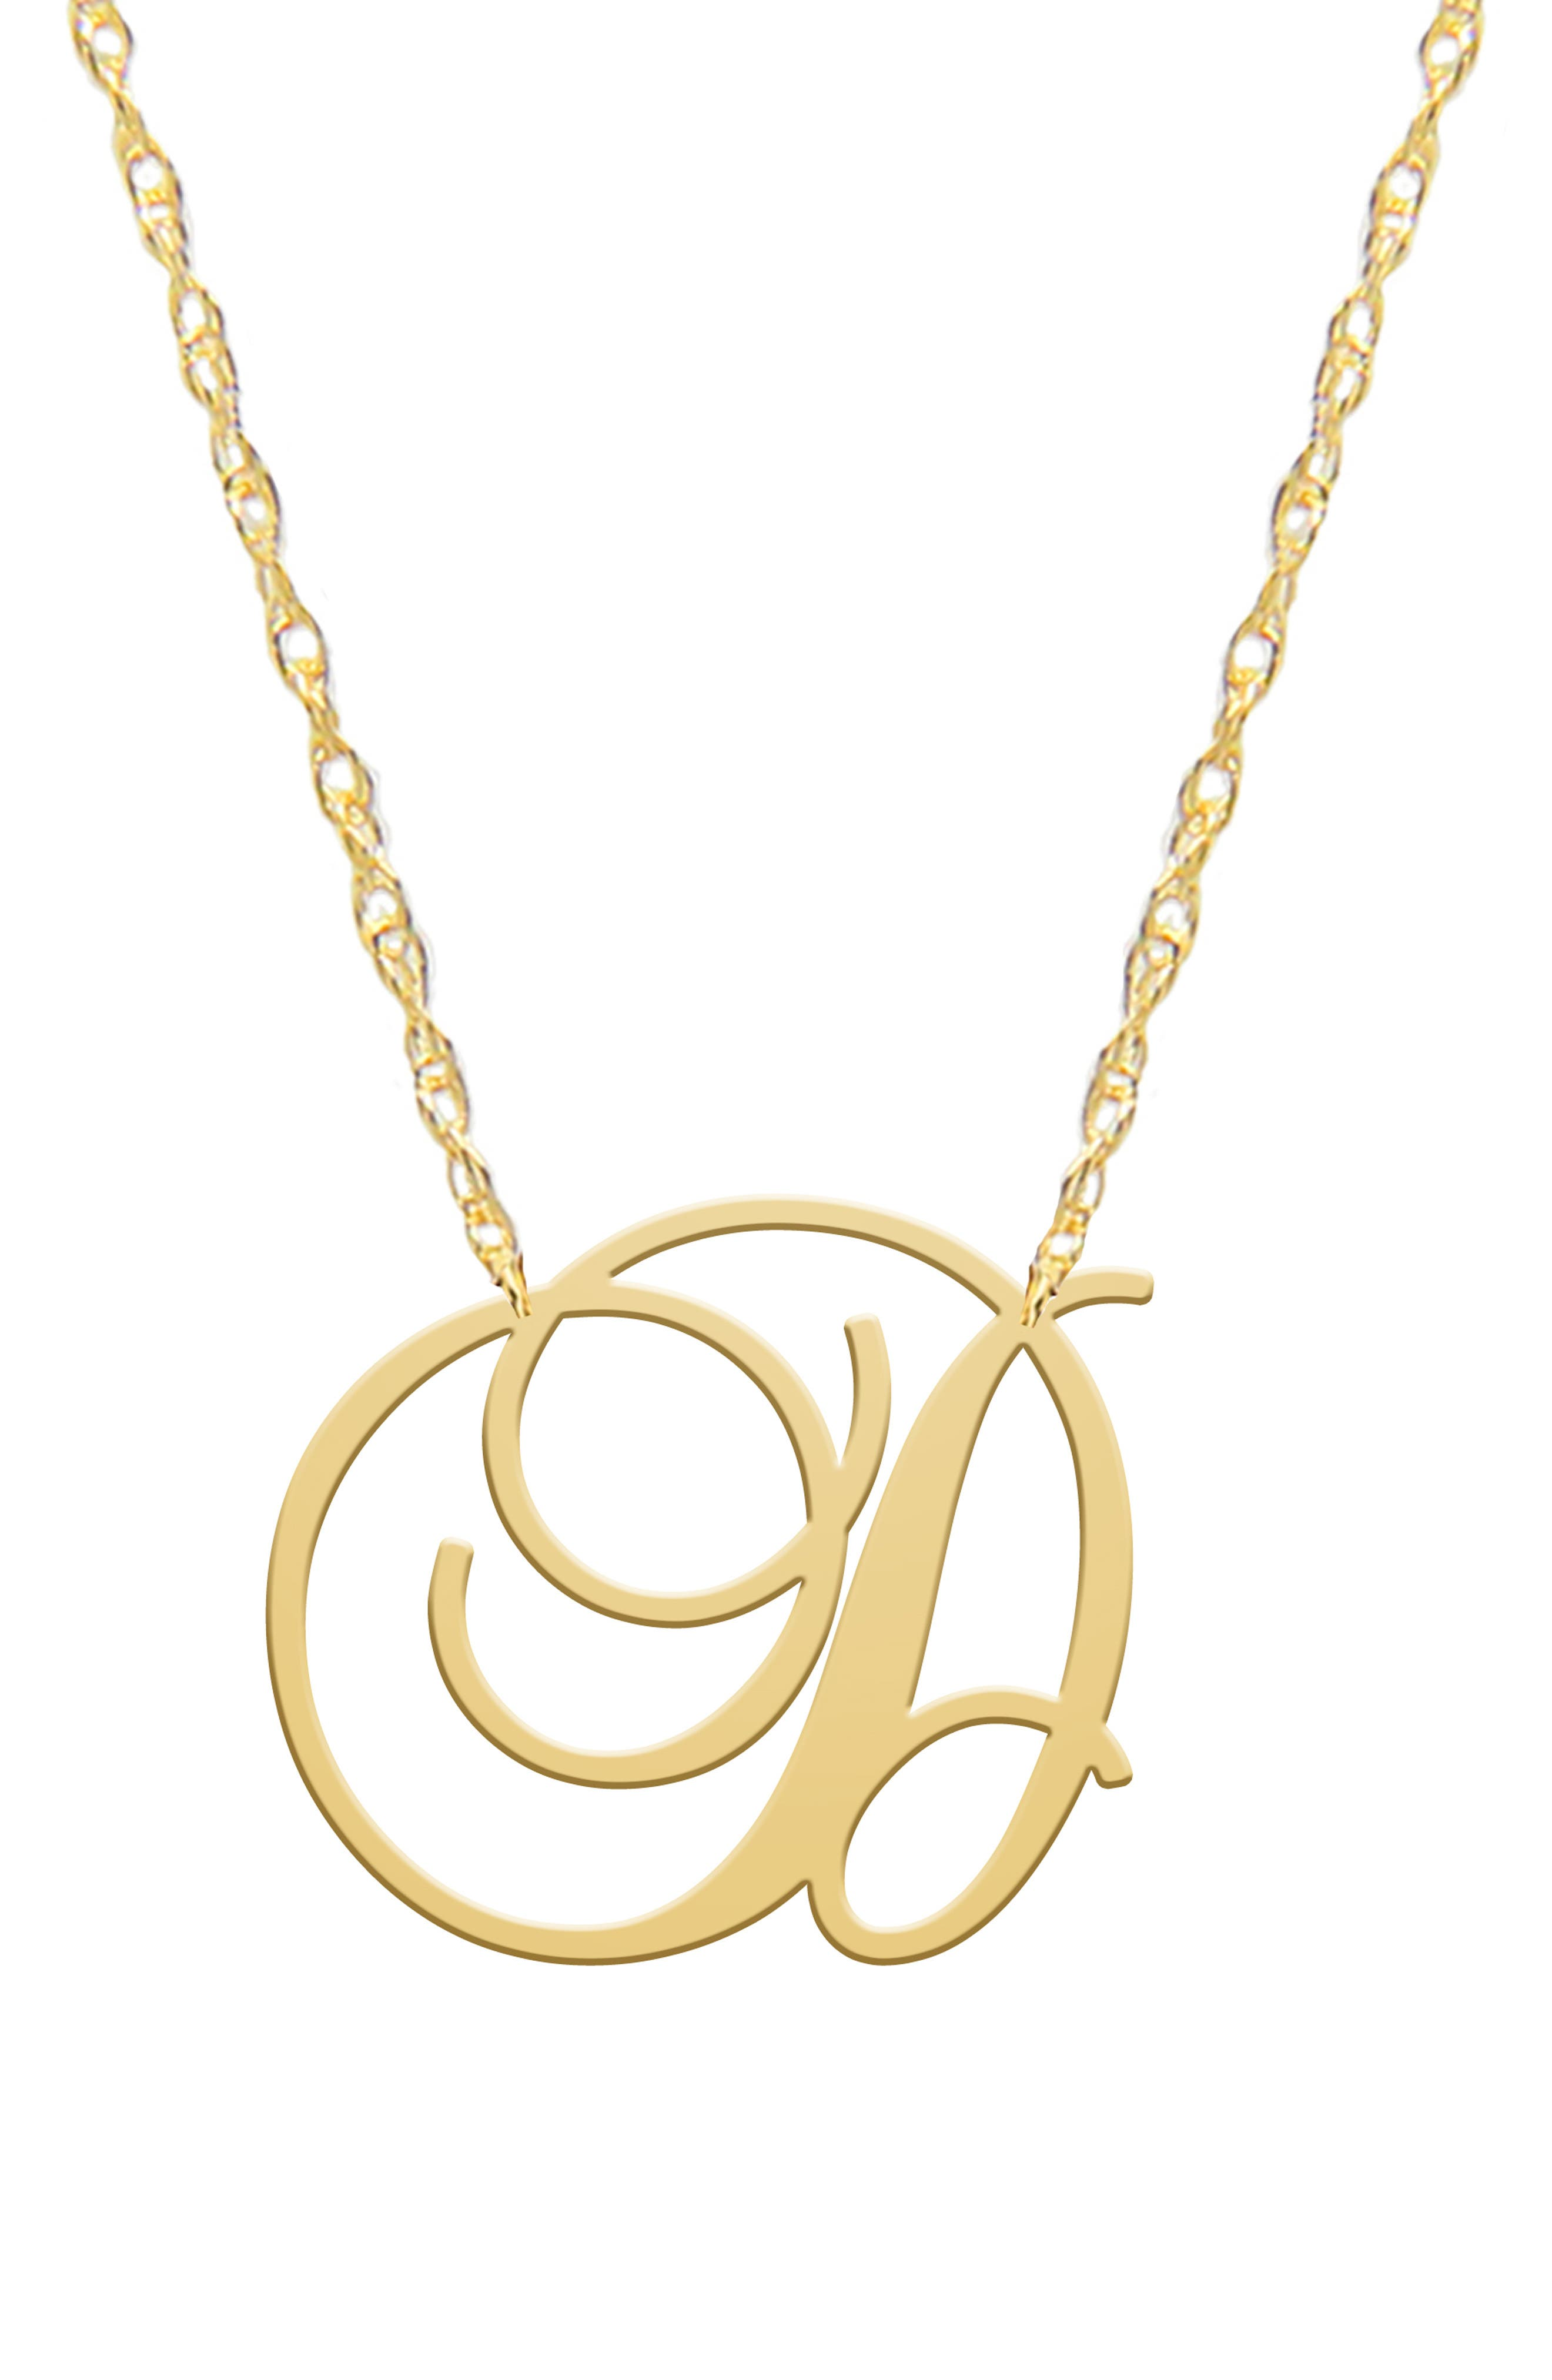 Opt for classy personalization with this 14k-gold plated necklace featuring an ornate cursive letter stationed on an adjustable rope chain. Style Name: Jane Basch Designs Swirly Initial Pendant Necklace. Style Number: 5844751. Available in stores.